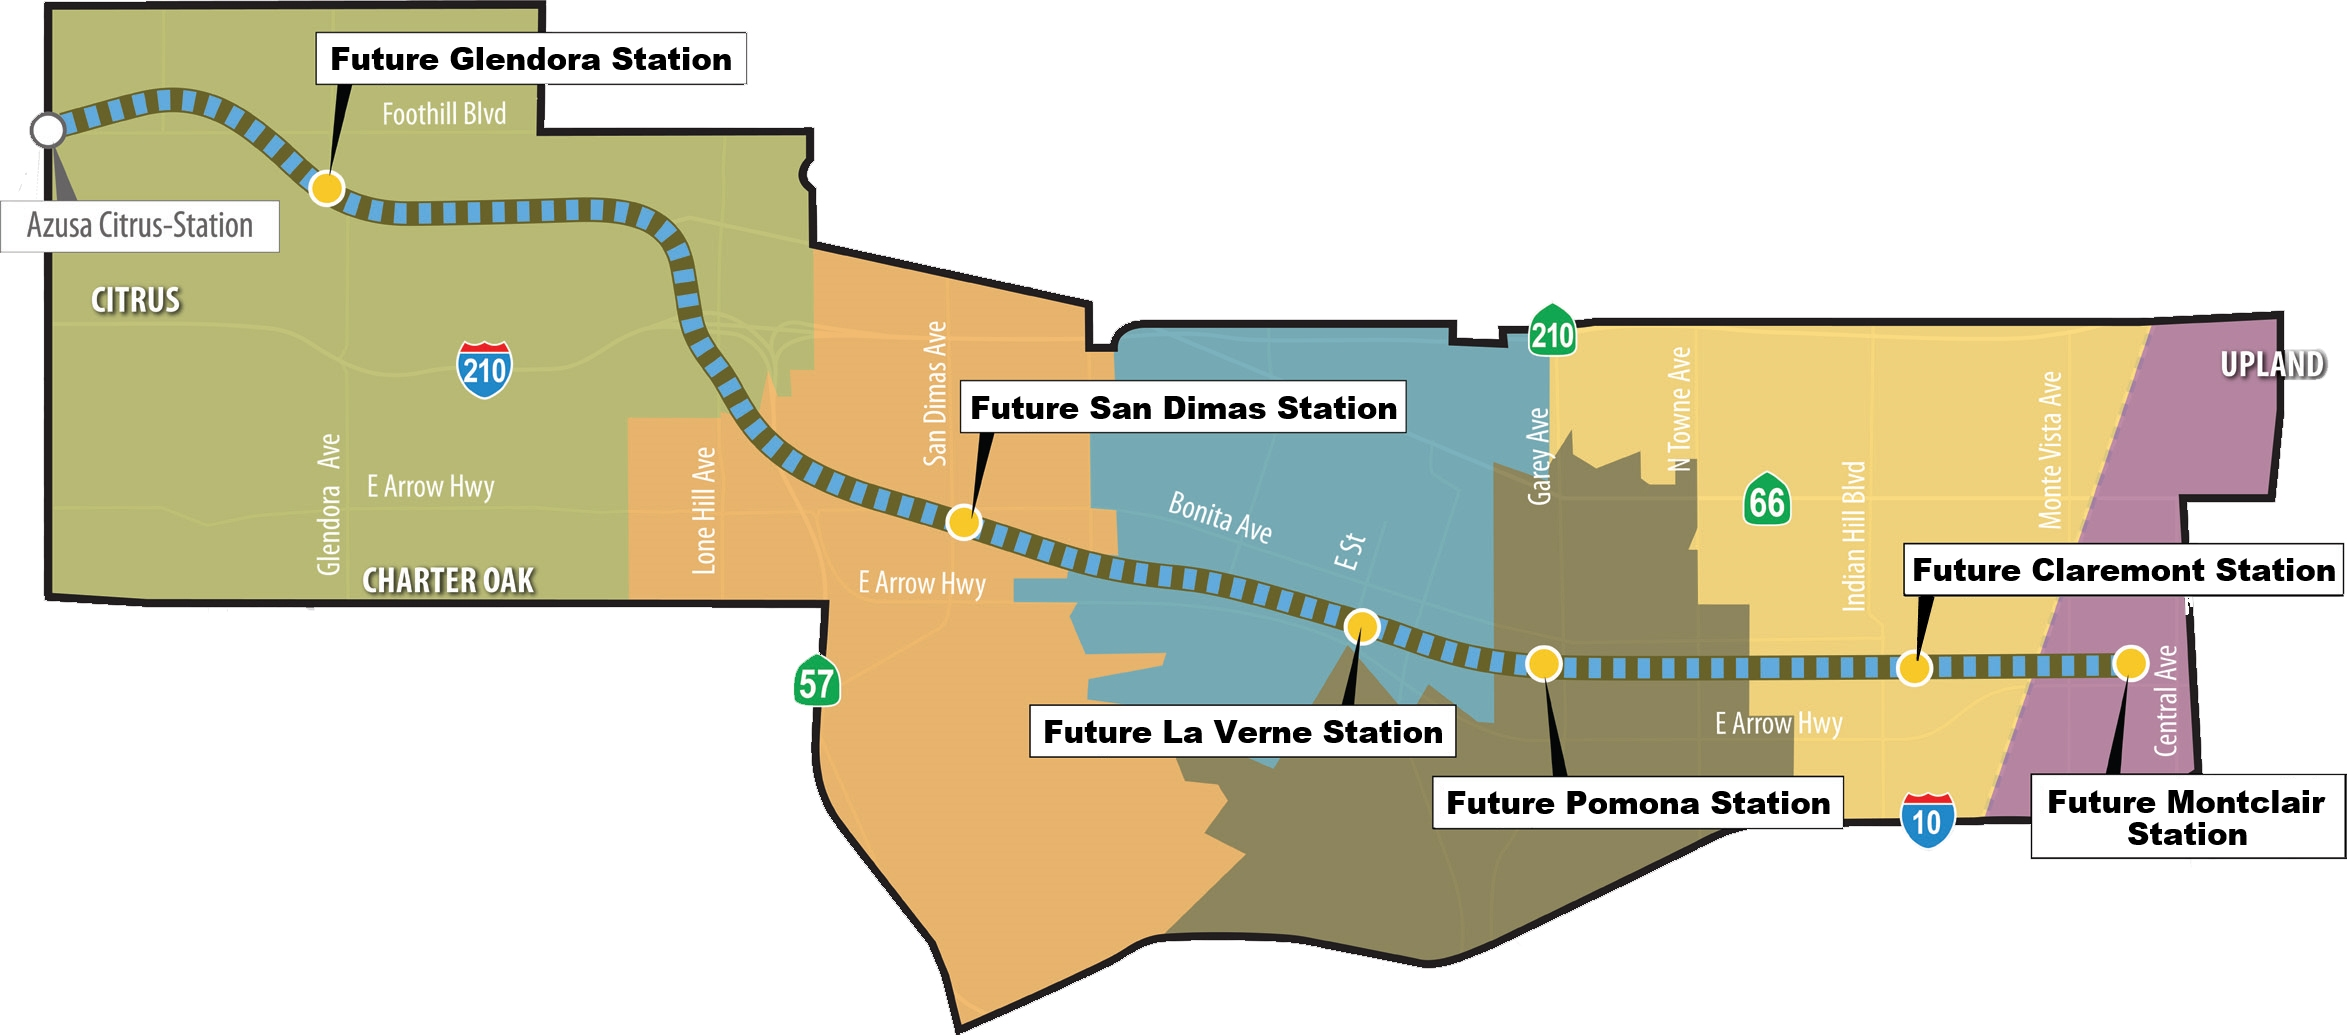 Measure M Gold Line Extension To Claremont The Source - Los angeles metro expansion map